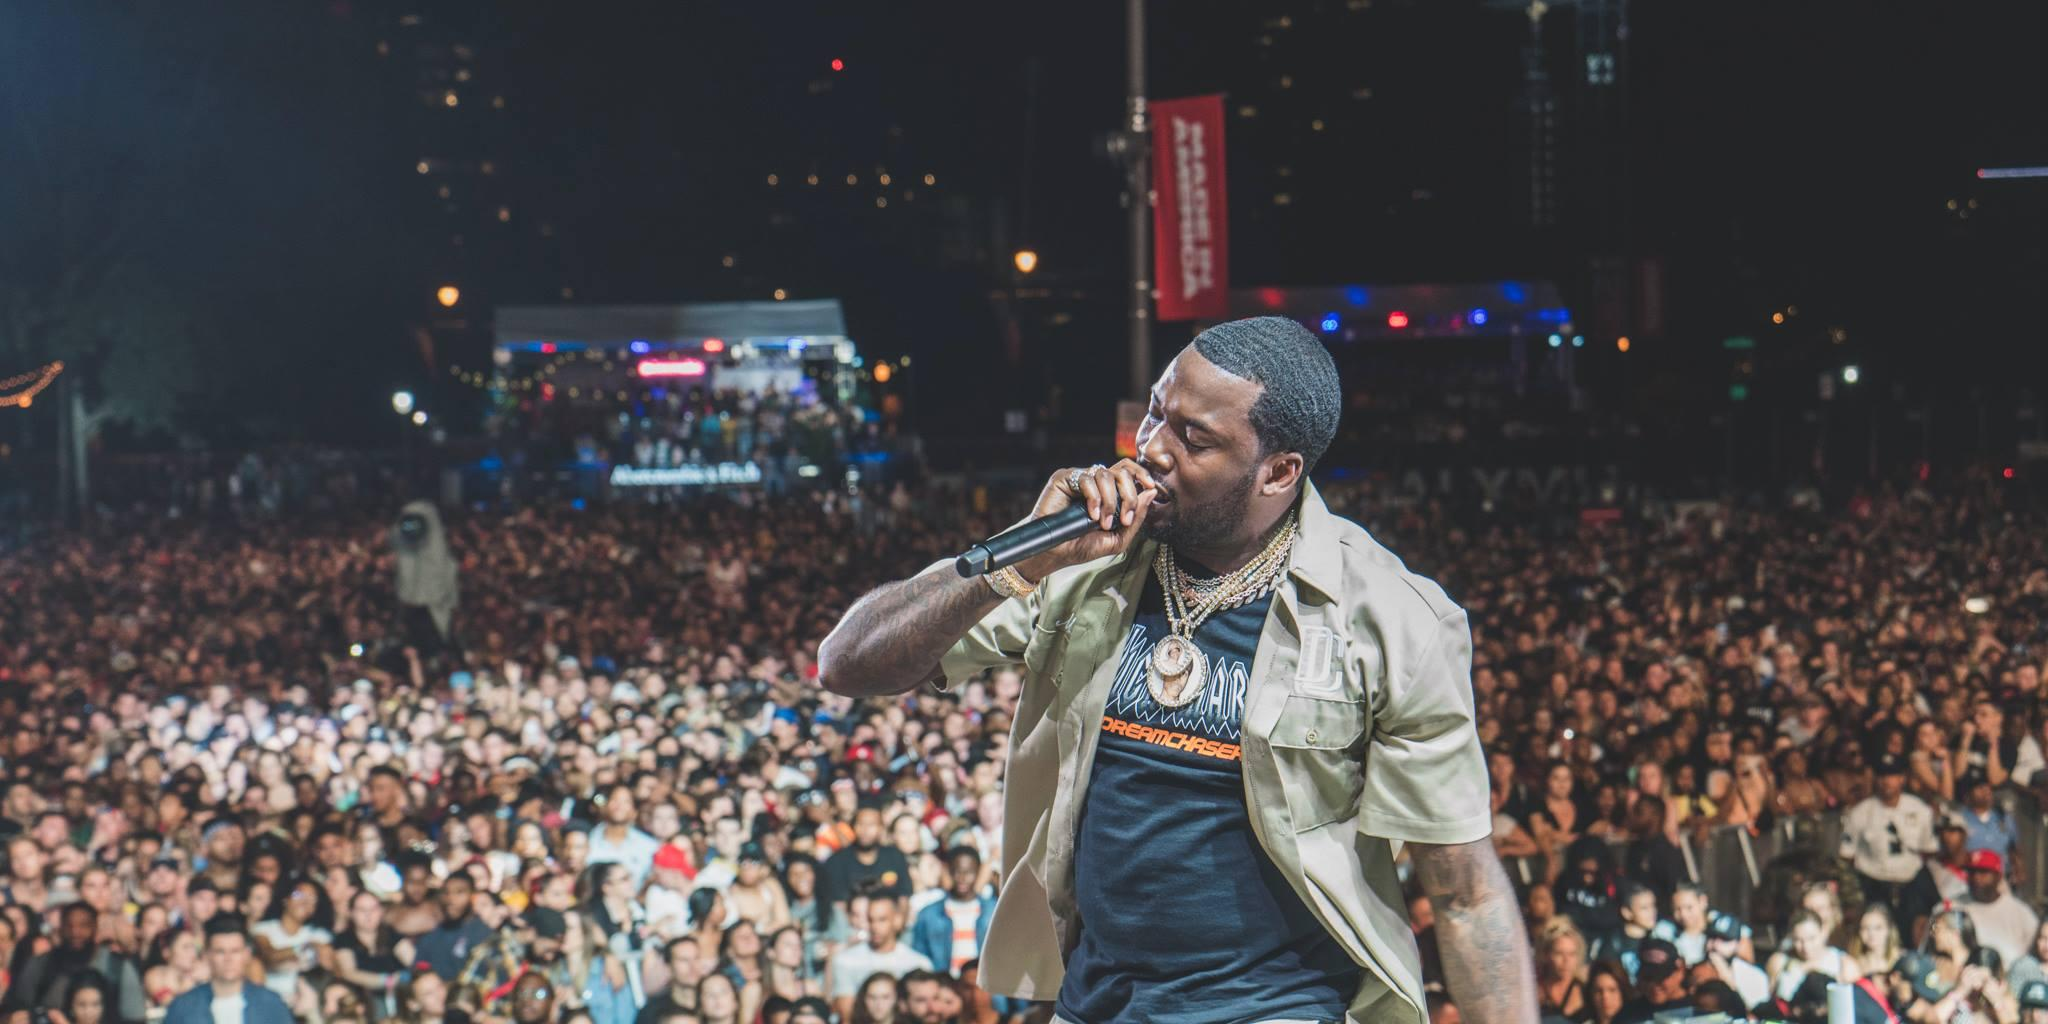 Meek Mill Compares The Hood To Squid Games - Check Out His Fans' Reactions